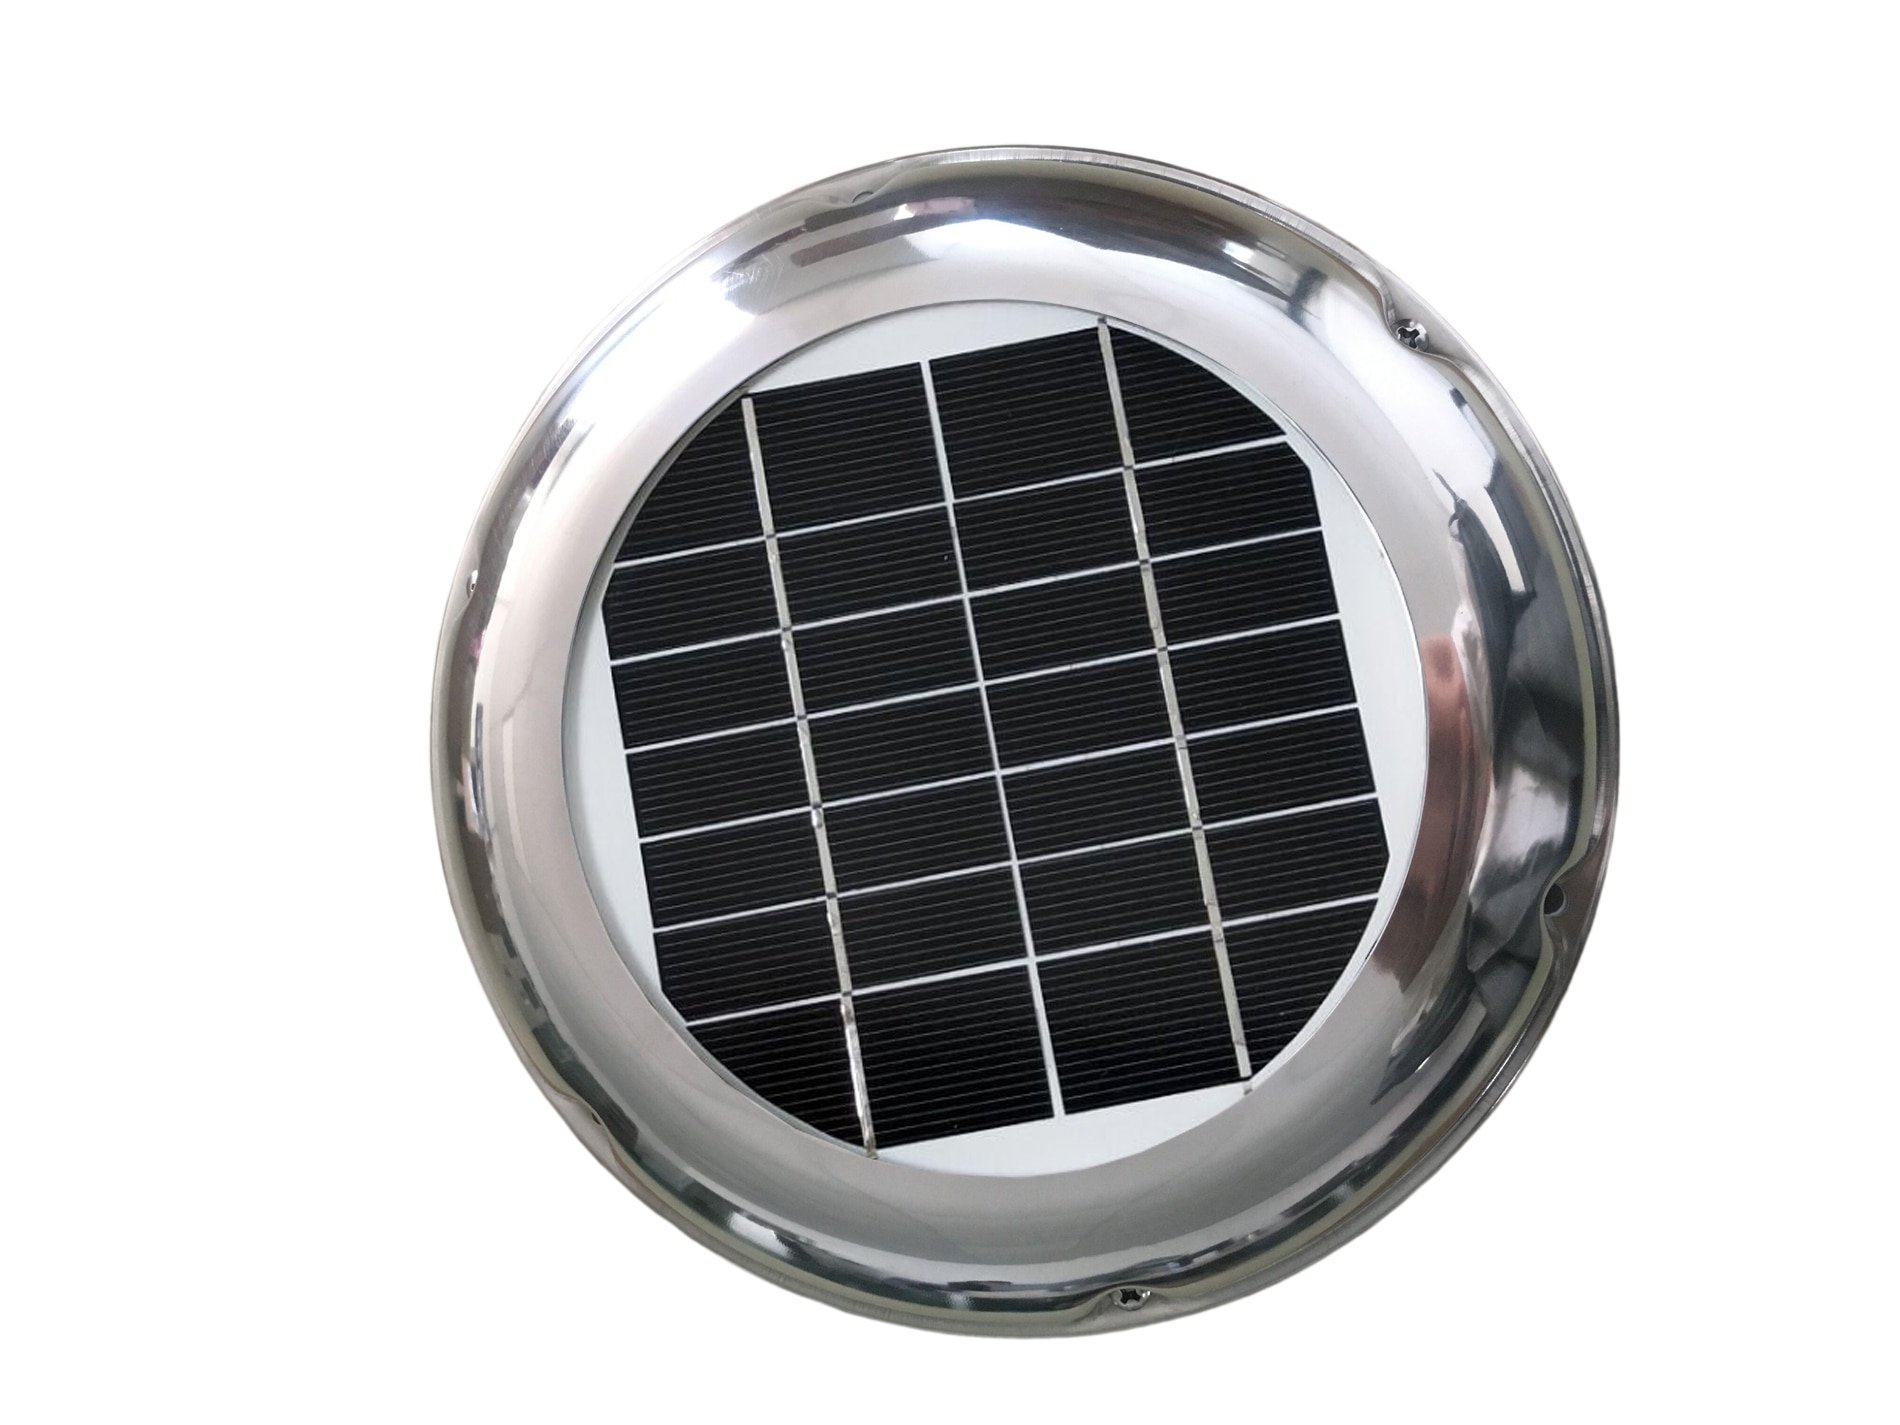 10w solar attic fan vent roof mounted exhaust ventilator 530cfm for greenhouse garage mobile toilet garden residential house 2.5W Stainless Steel Roof Solar Vent Fan Exhaust Ventilation 60CFM Waterproof ideal for RV Boat Container Greenhouse Toilet